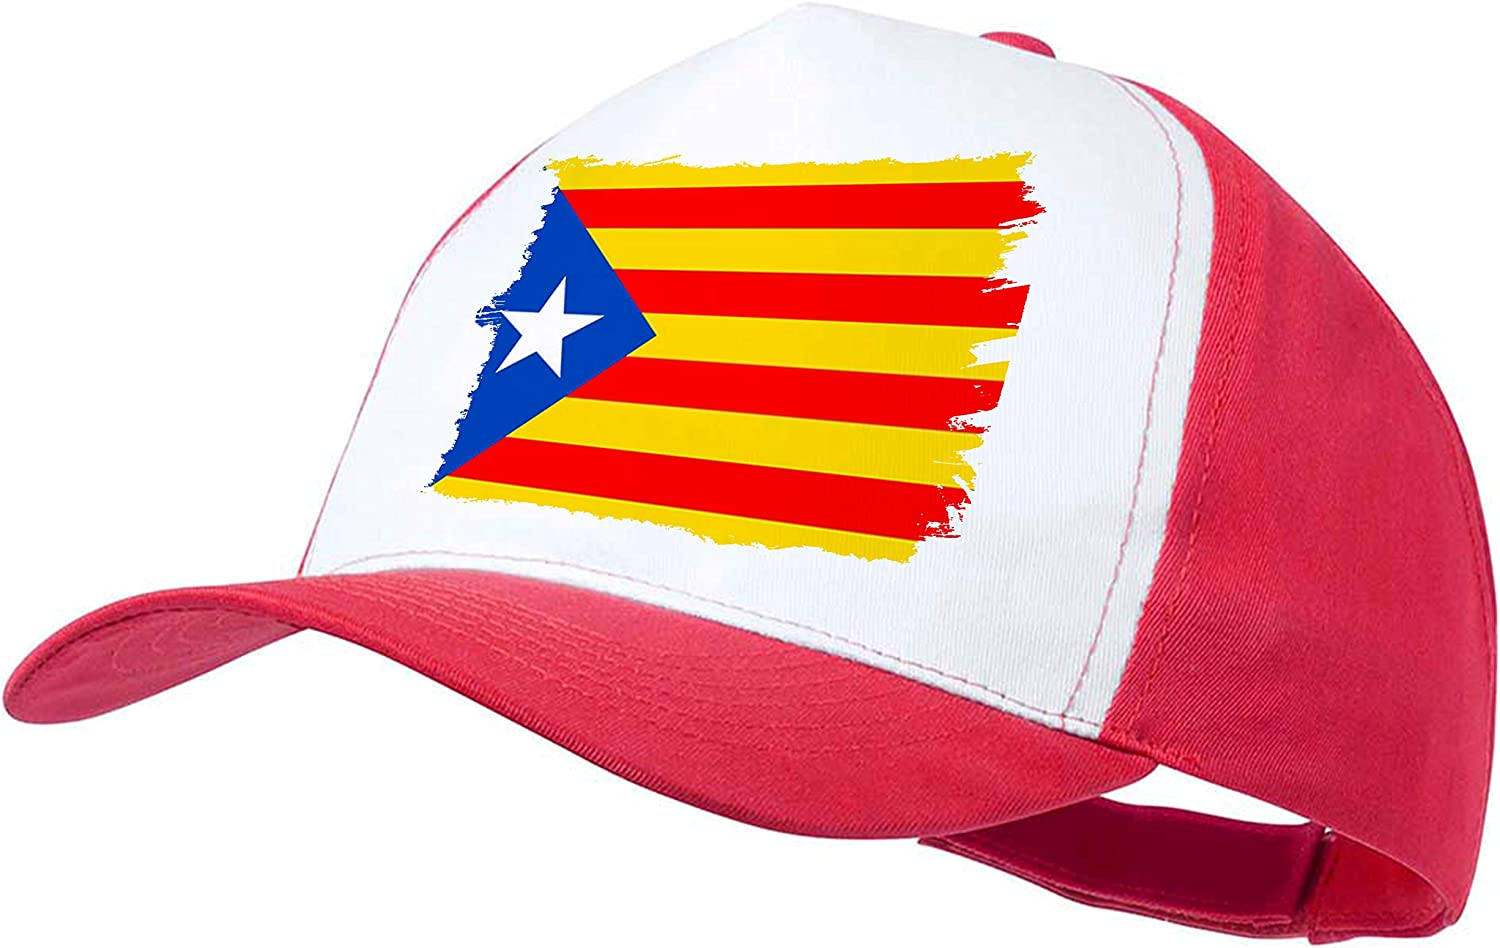 MERCHANDMANIA Gorra ROJA Bandera CATALUÑA Independencia Color Cap: Amazon.es: Deportes y aire libre